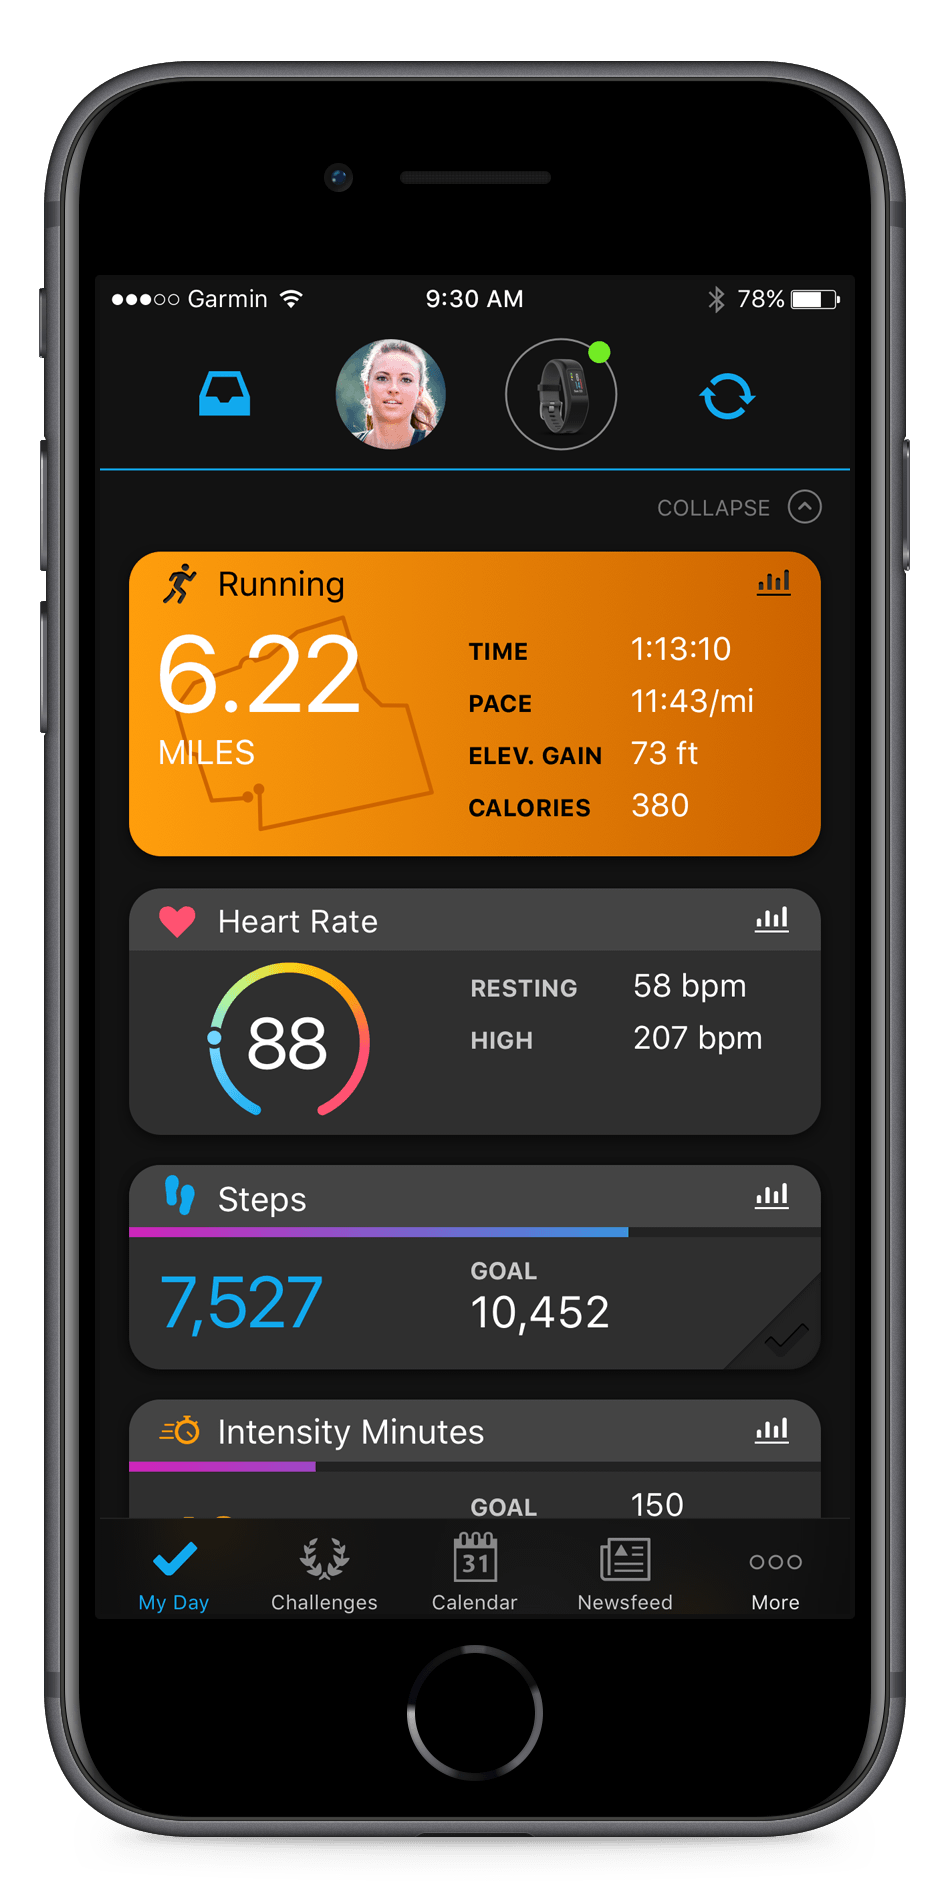 Garmin and Strava mobile apps  Image credit:  Connect.garmin